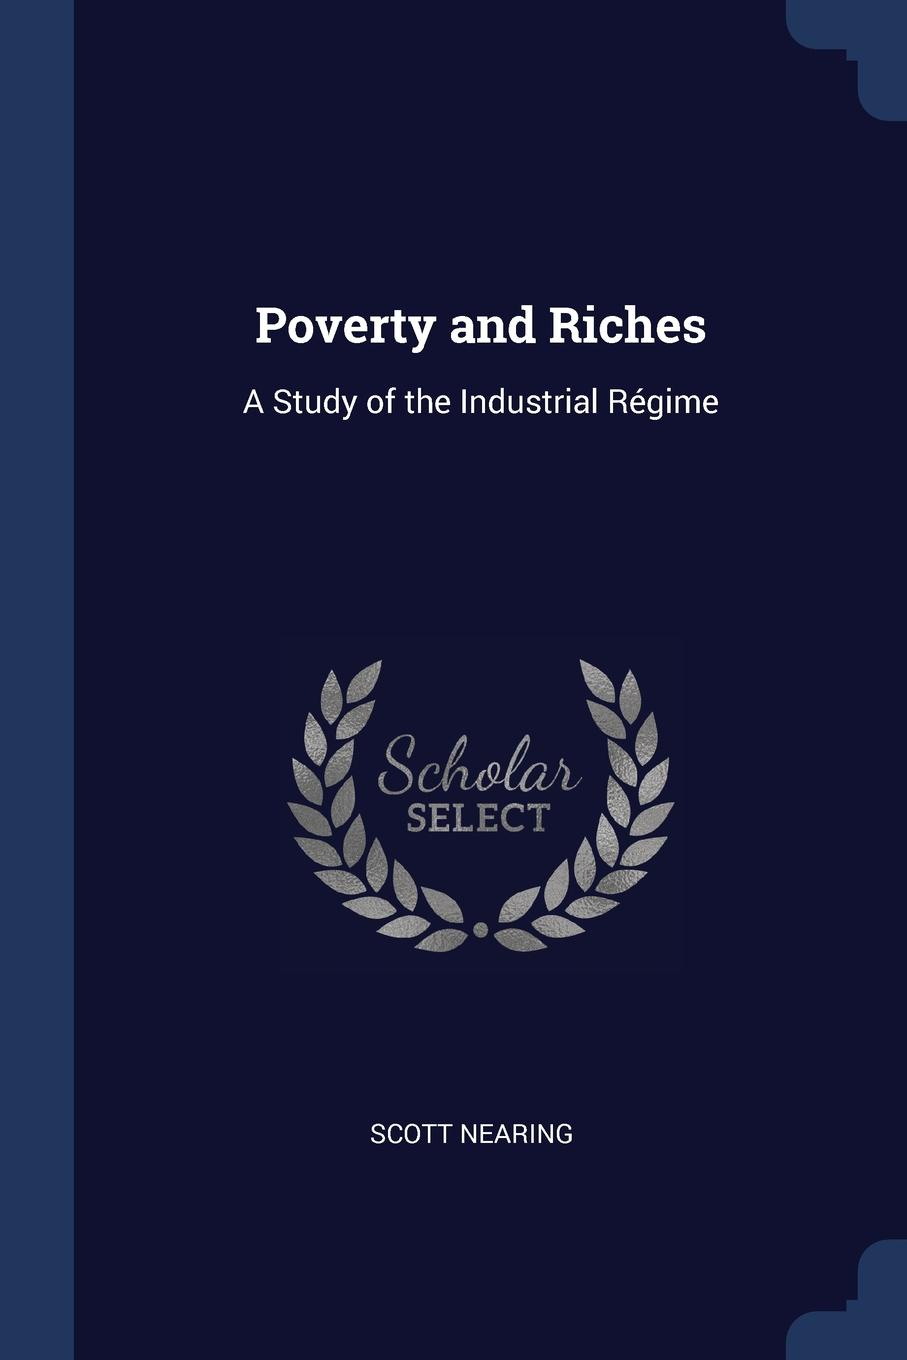 Scott Nearing Poverty and Riches. A Study of the Industrial Regime